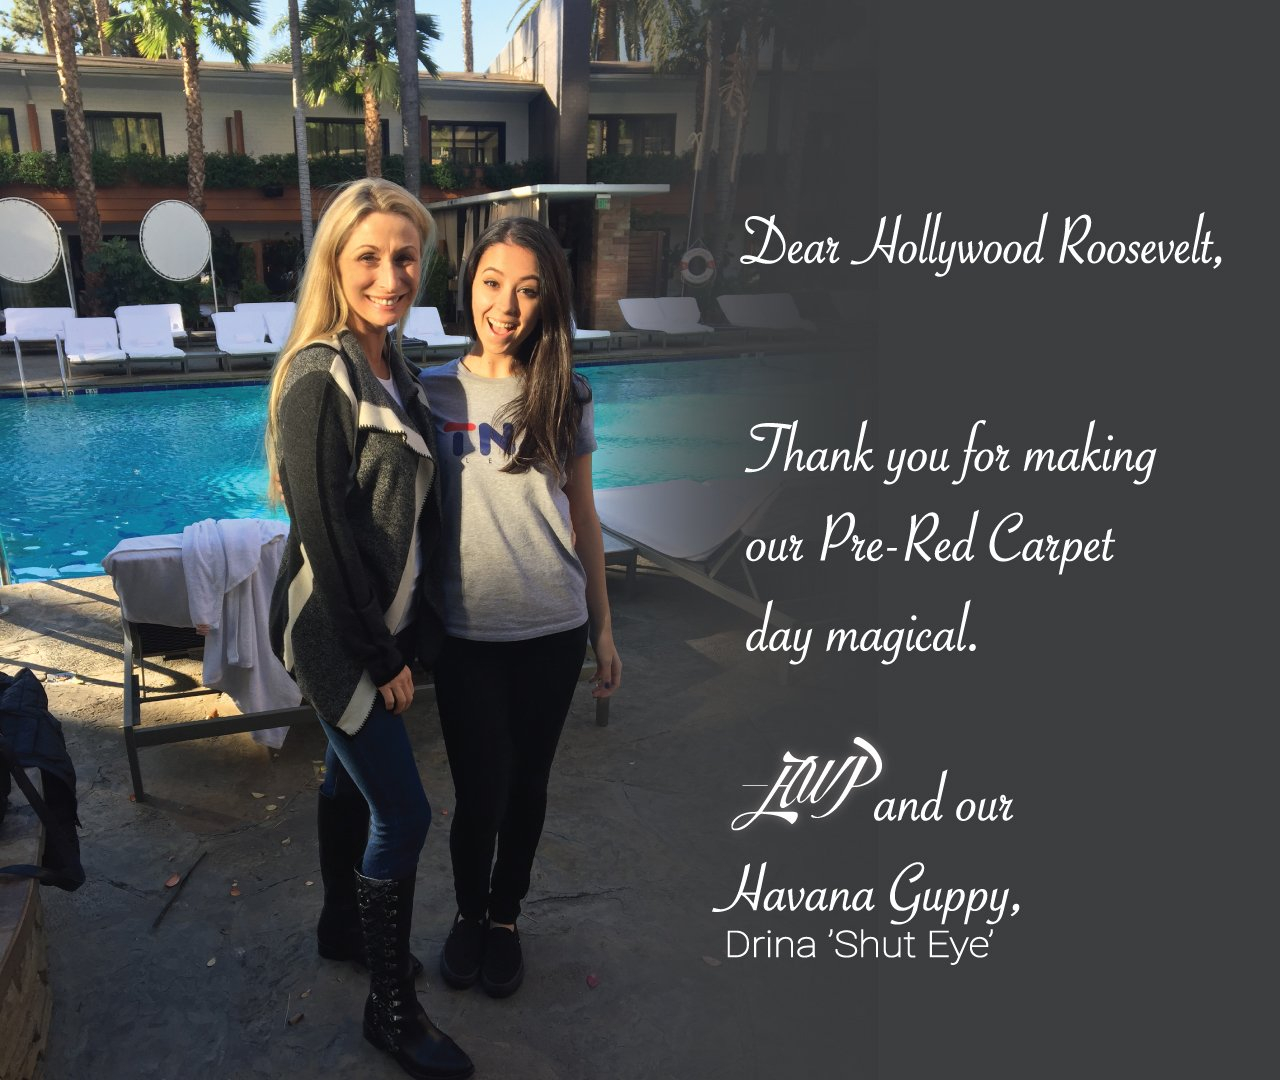 #HWP is back, ready for @shuteyeonhulu Dec.7 | Thank you @hwood_roosevelt for offering @HavanaGuppy the #star treatment we rely upon. https://t.co/oy3Q4UGVrv